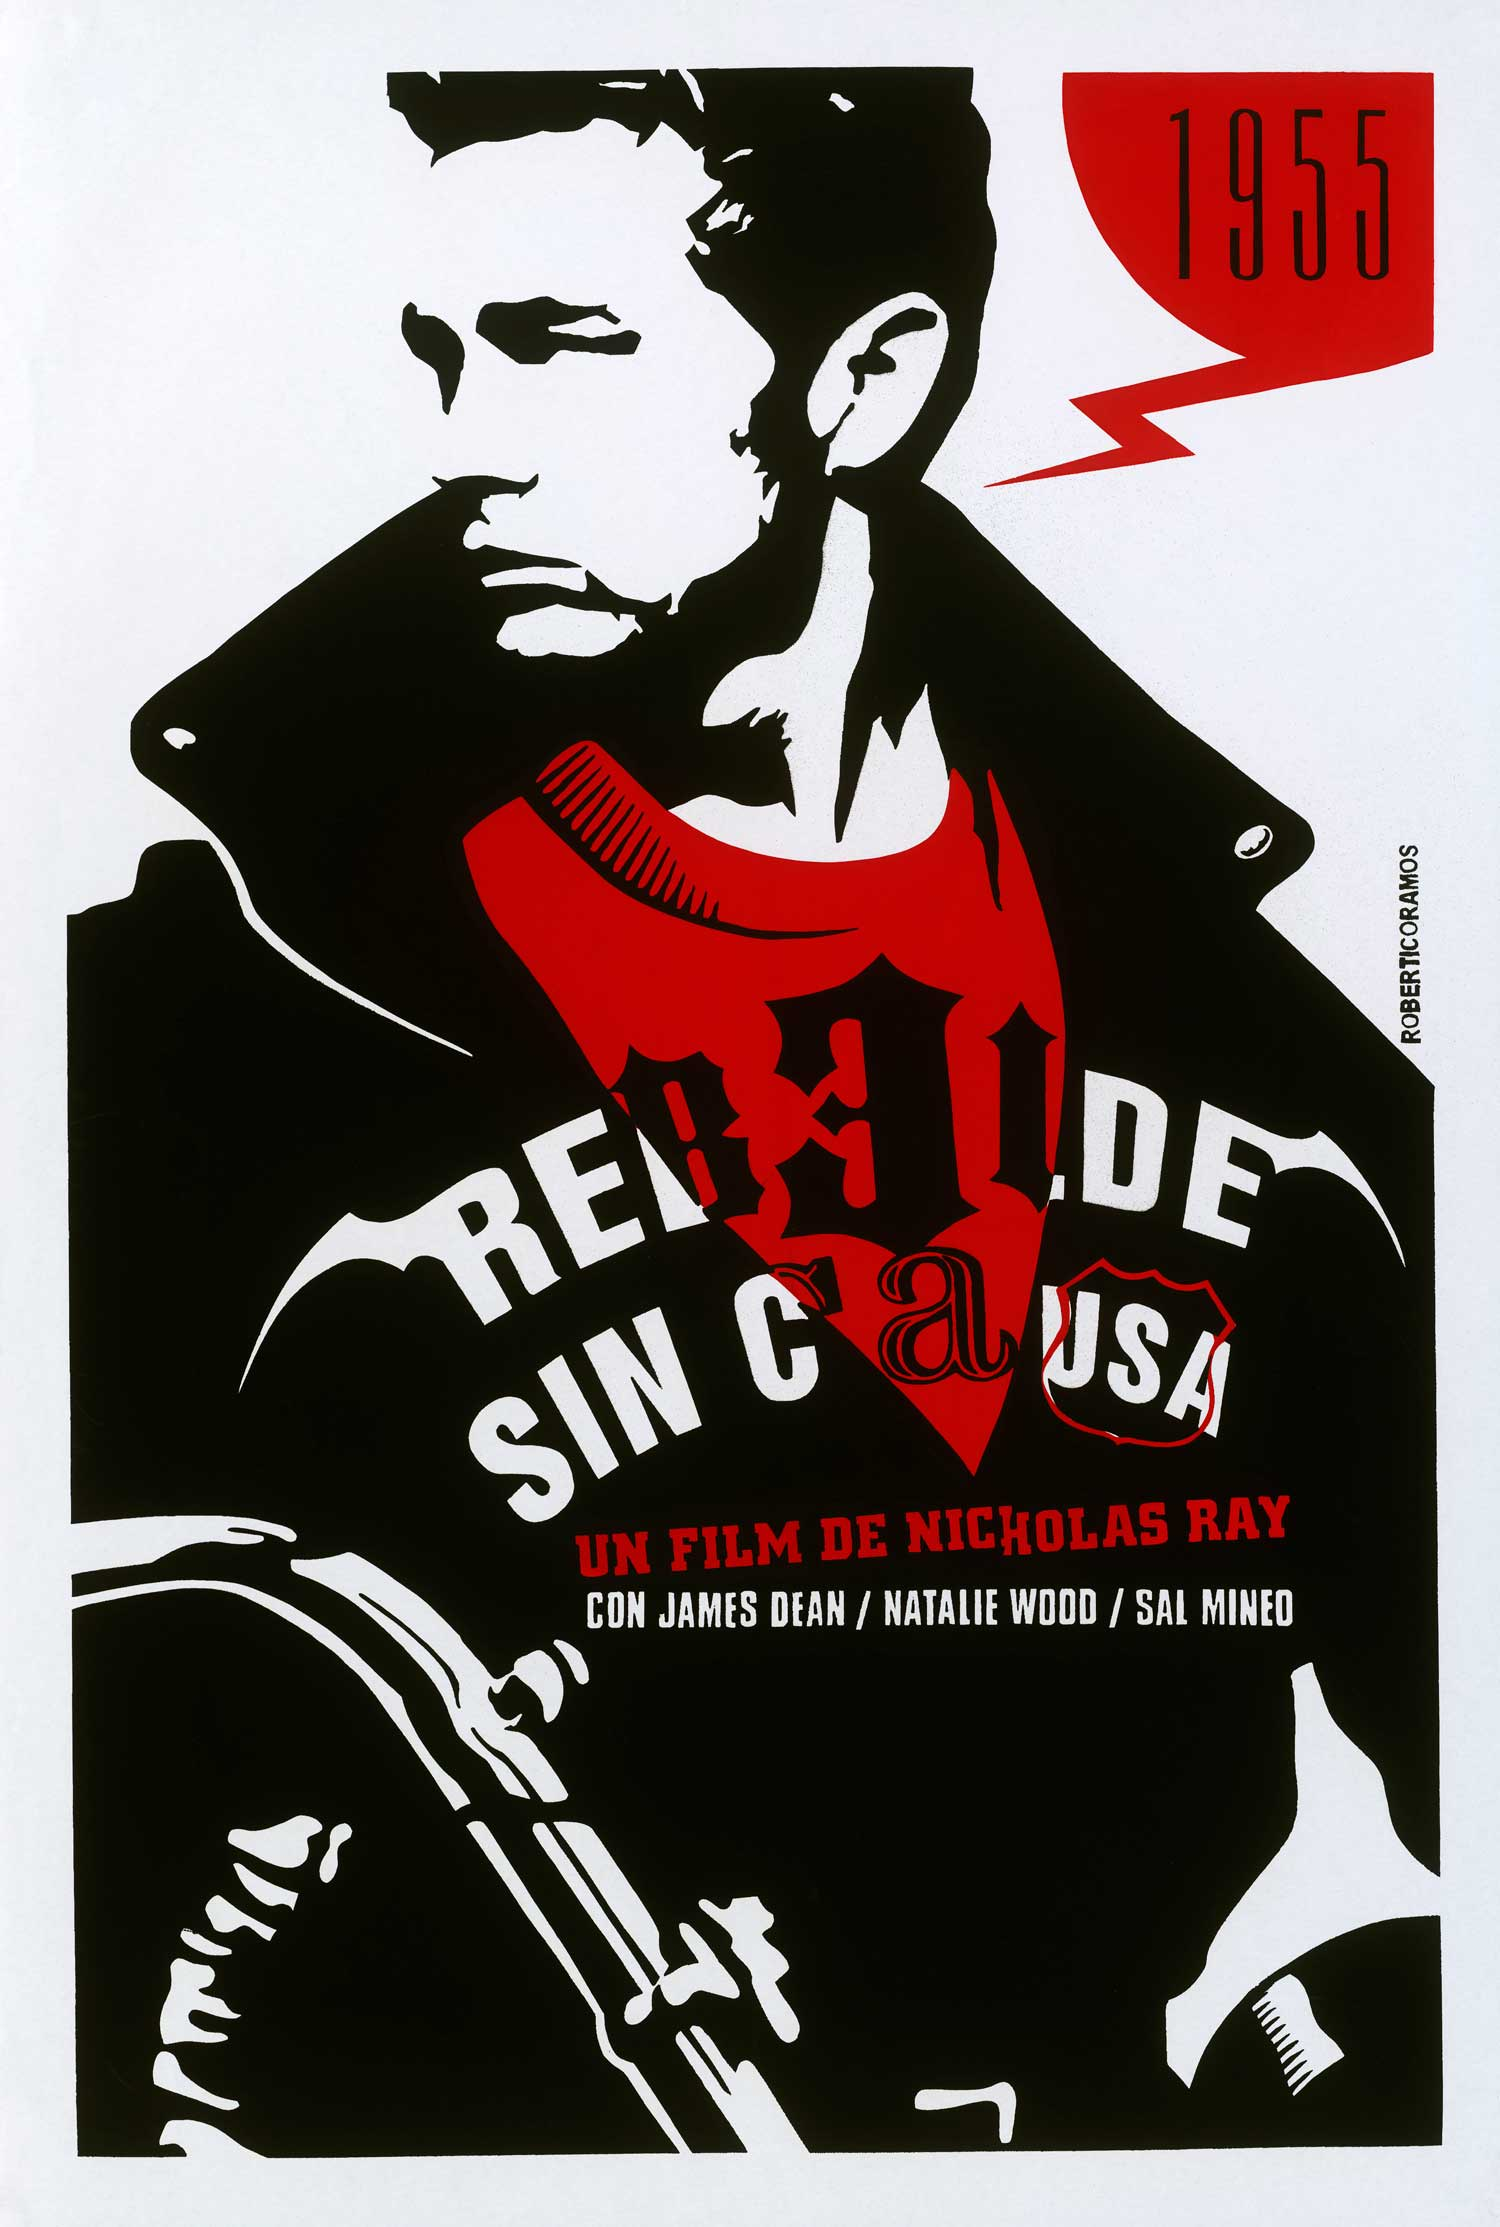 Rebel without a Cause has been reissued in theaters many times over the years, as seen in this striking Italian poster.